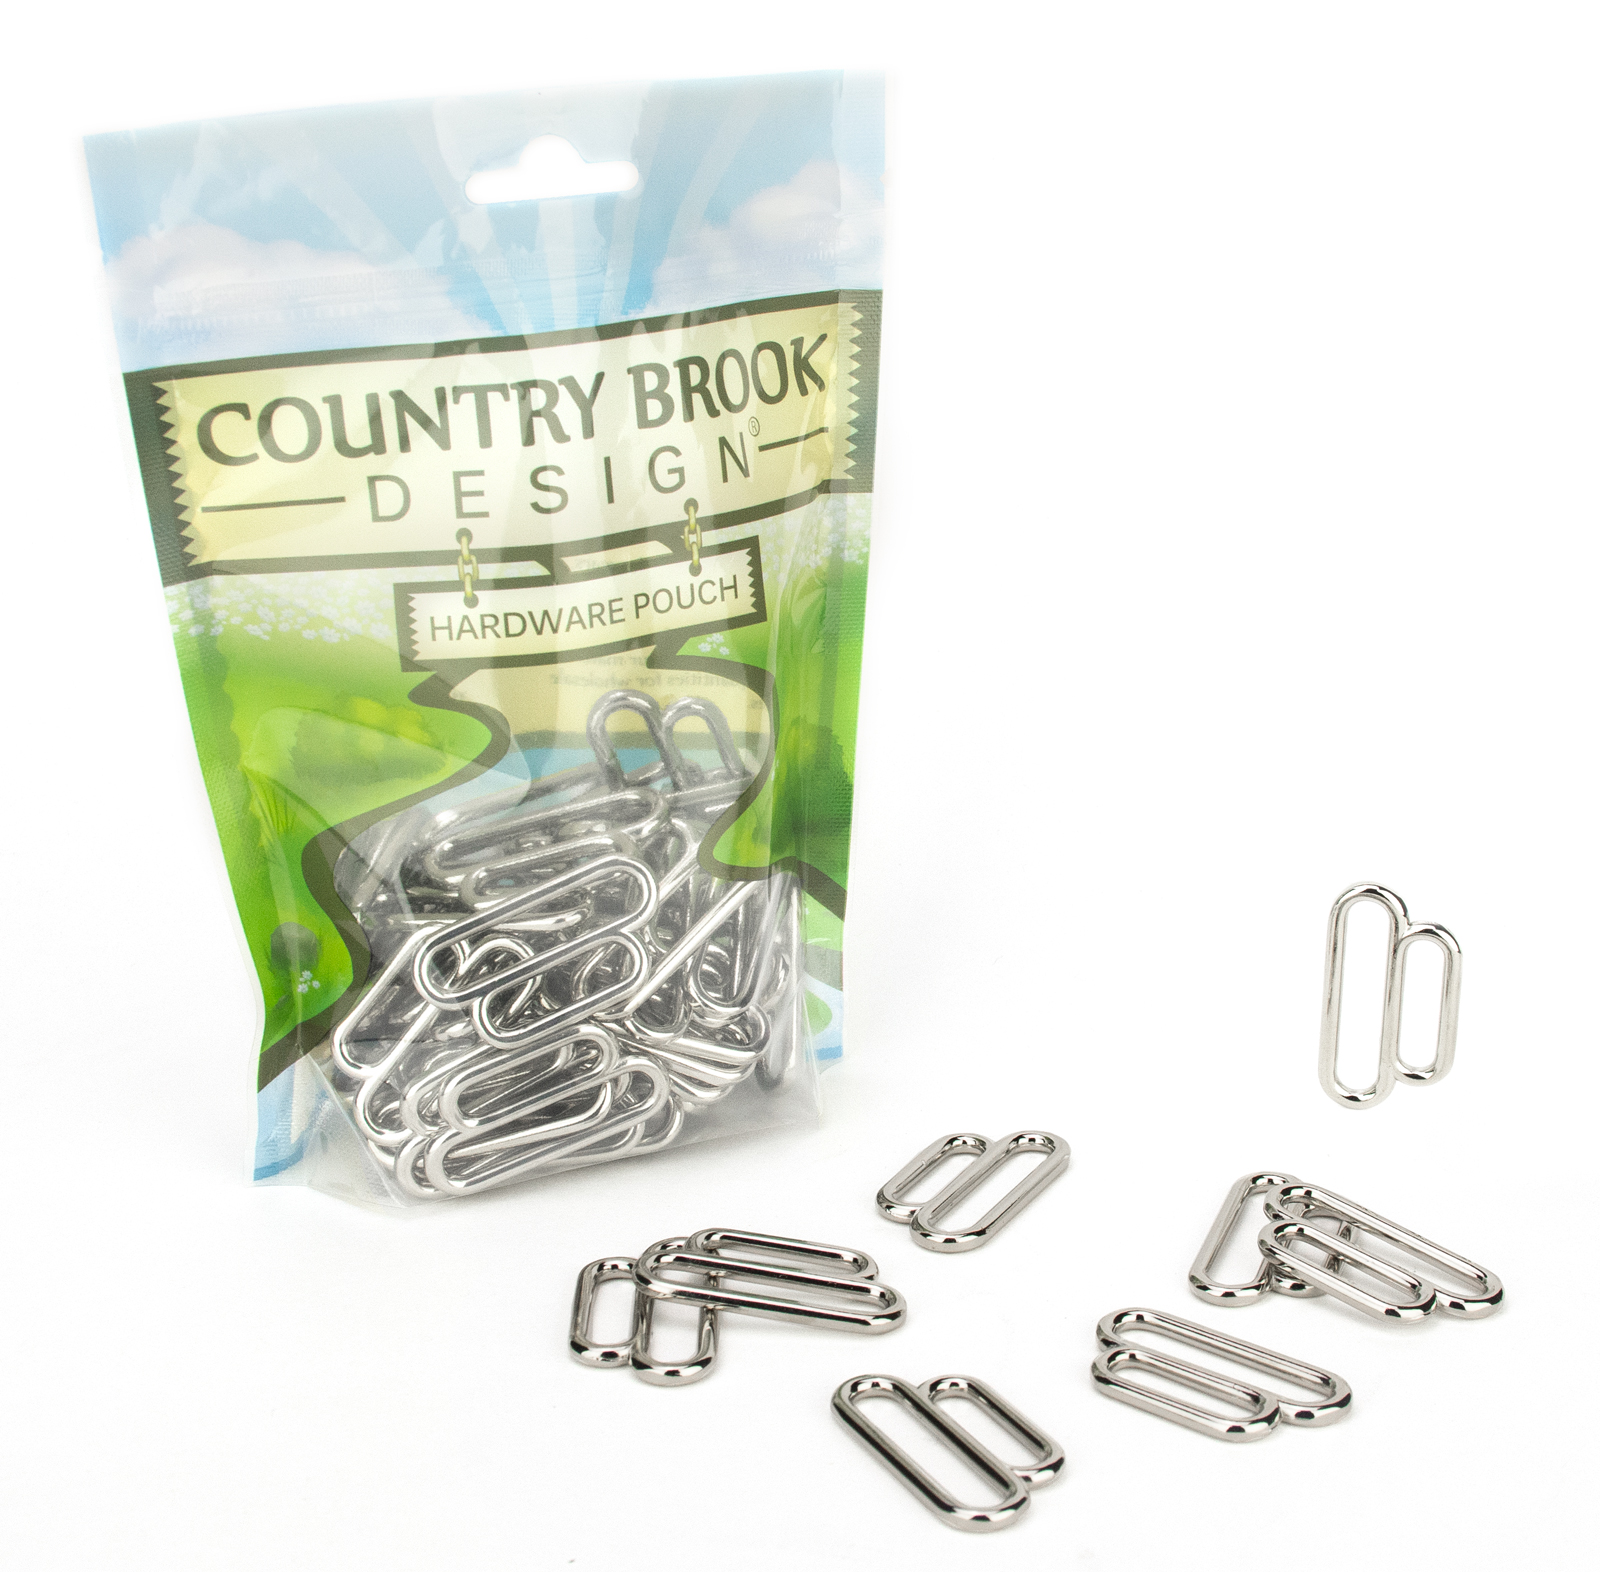 Country Brook Design® 1 1/2 Inch to 1 Inch Reducer Slides